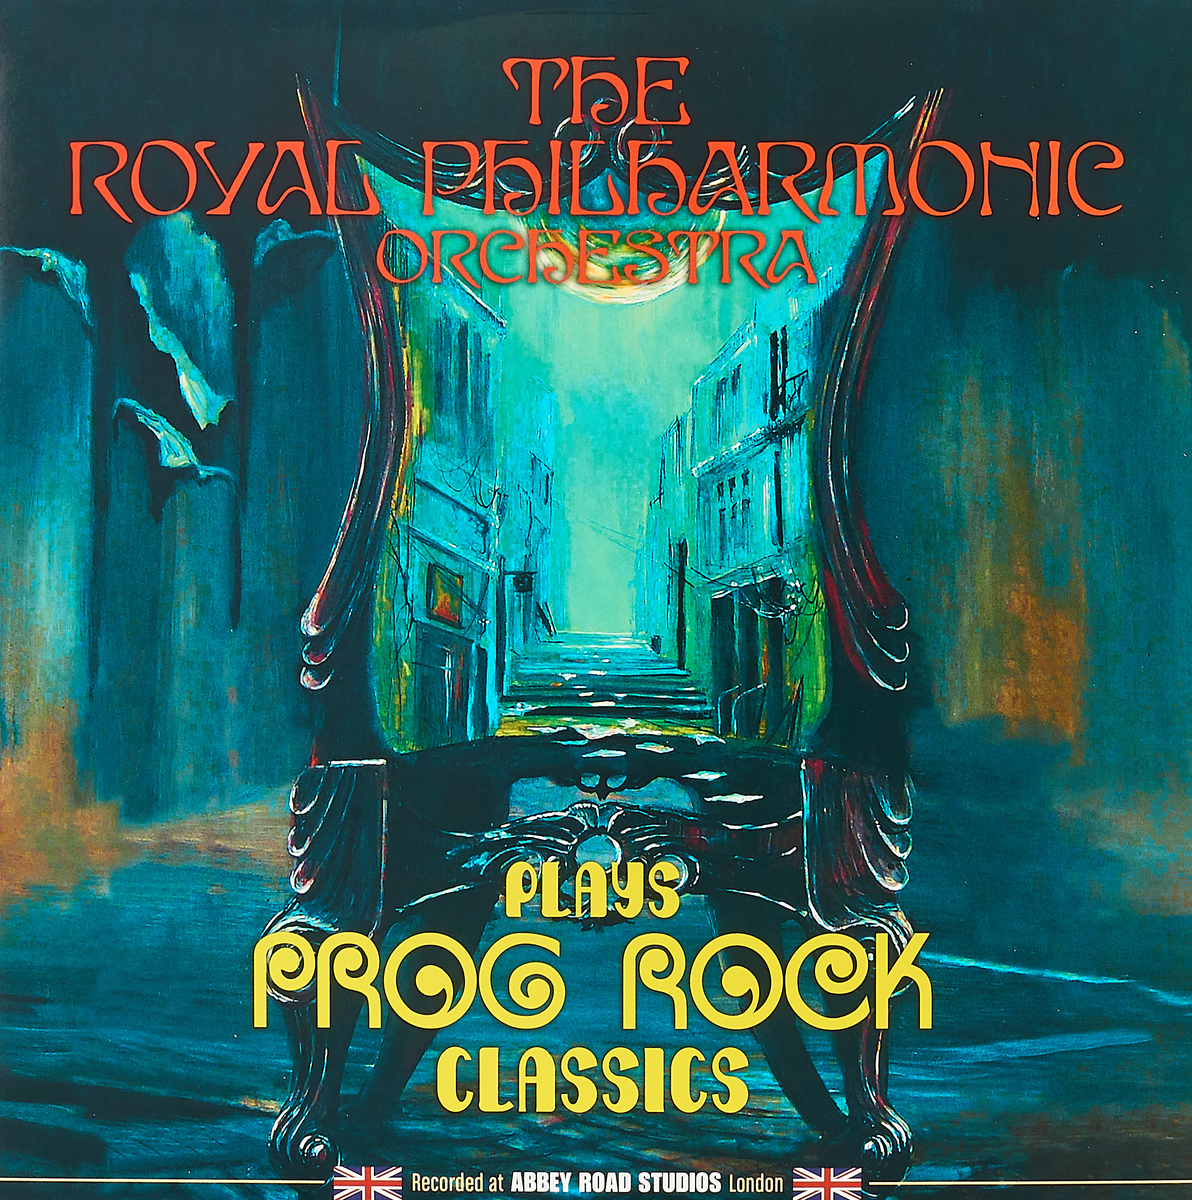 The Royal Philharmonic Orchestra The Royal Philharmonic Orchestra. Plays Prog Rock Classics (LP) рени флеминг андреас делфс the royal philharmonic orchestra renee fleming saсred songs